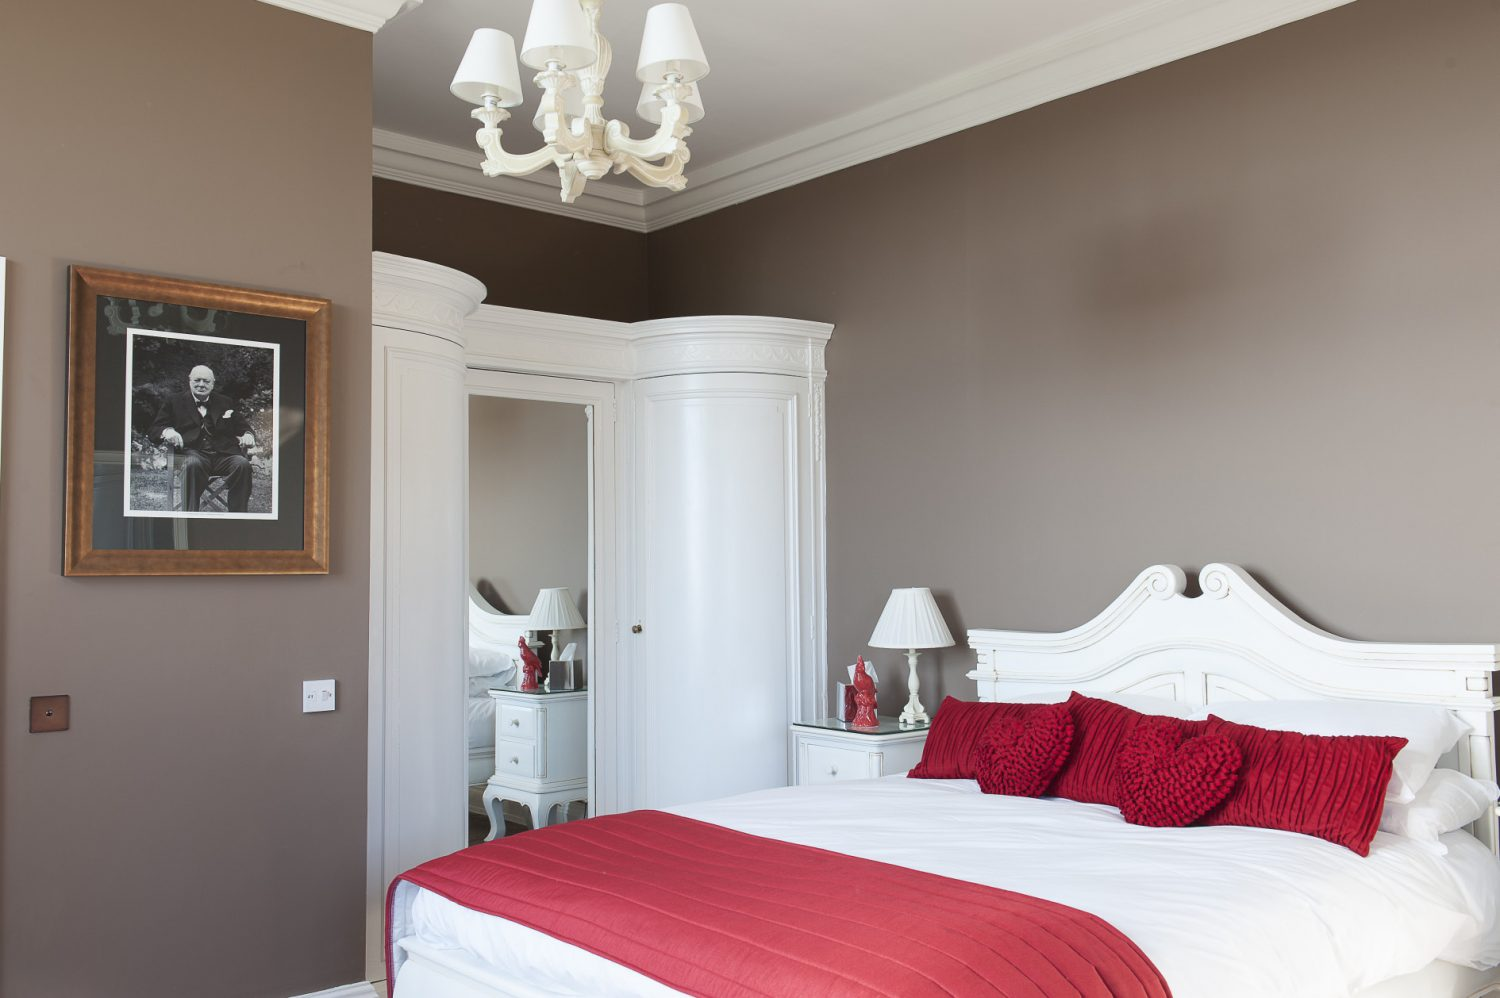 Upstairs the bedrooms have been renovated as faithfully as possible